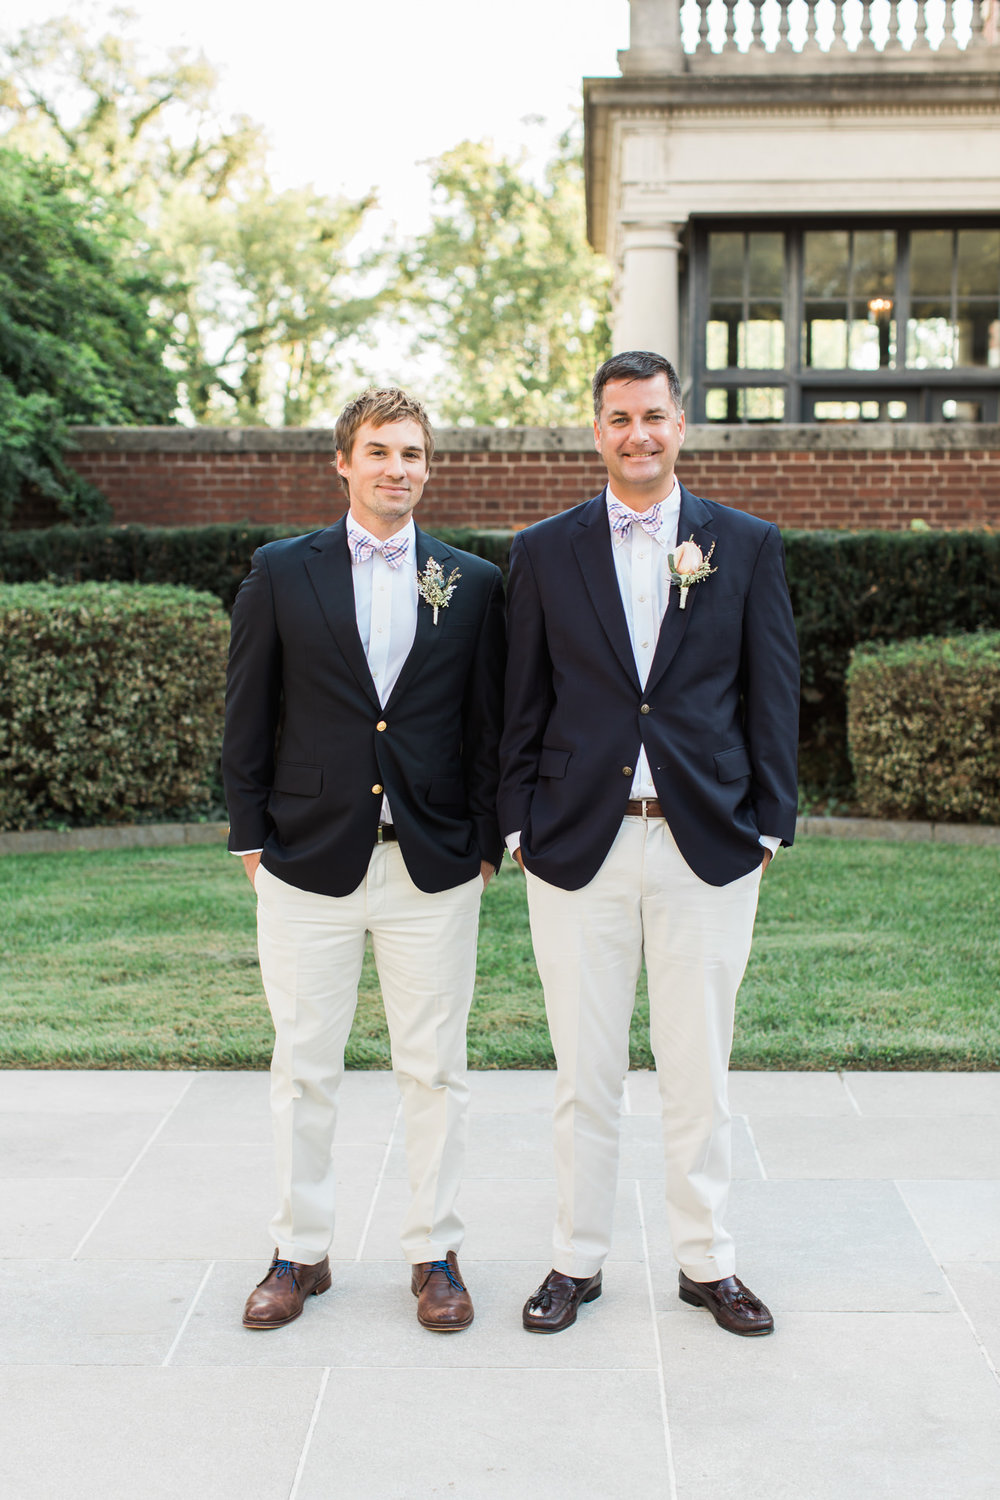 Groom and his groomsman at Garden Court Louisville Kentucky Wedding